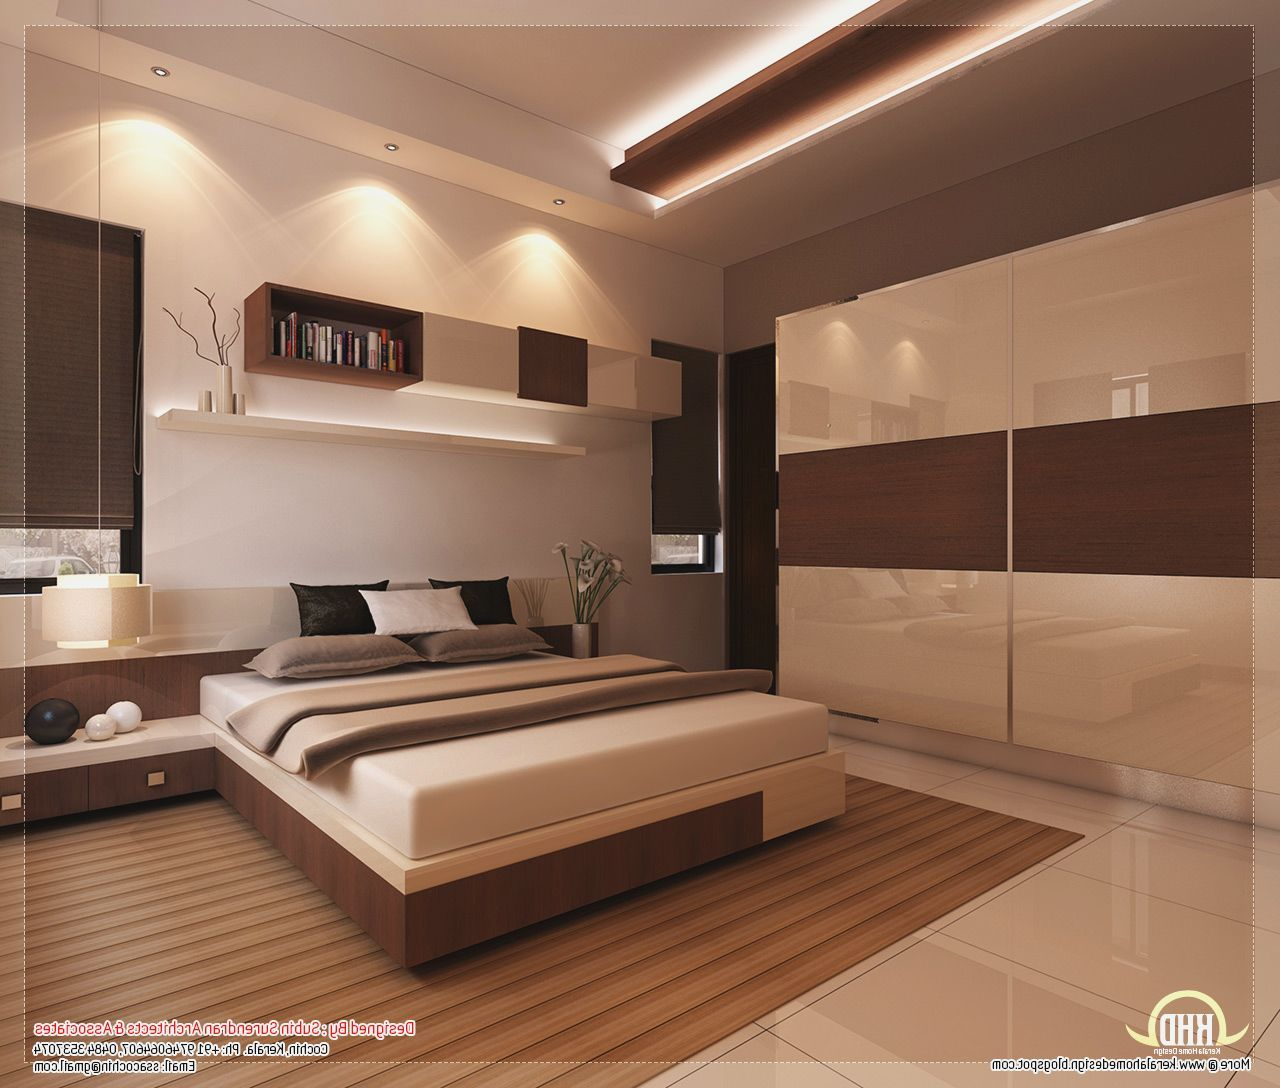 Bedroom designs india low cost more picture bedroom Bedroom designs india